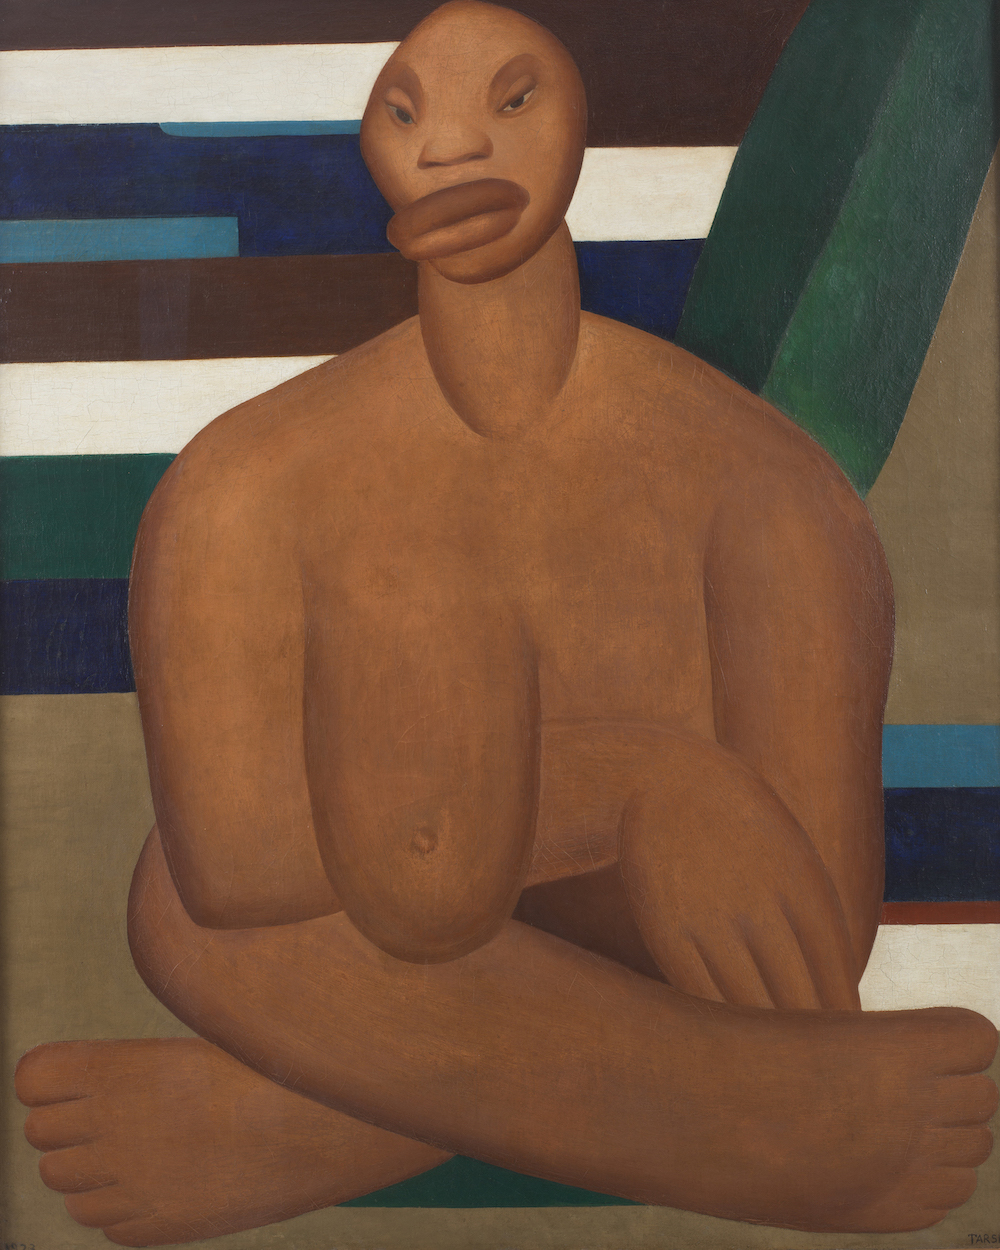 Tarsila do Amaral, A Negra, 1923, oil on canvas, Museo de Arte Contemporânea de Universidade de São Paulo, © Tarsila do Amaral Licenciamentos